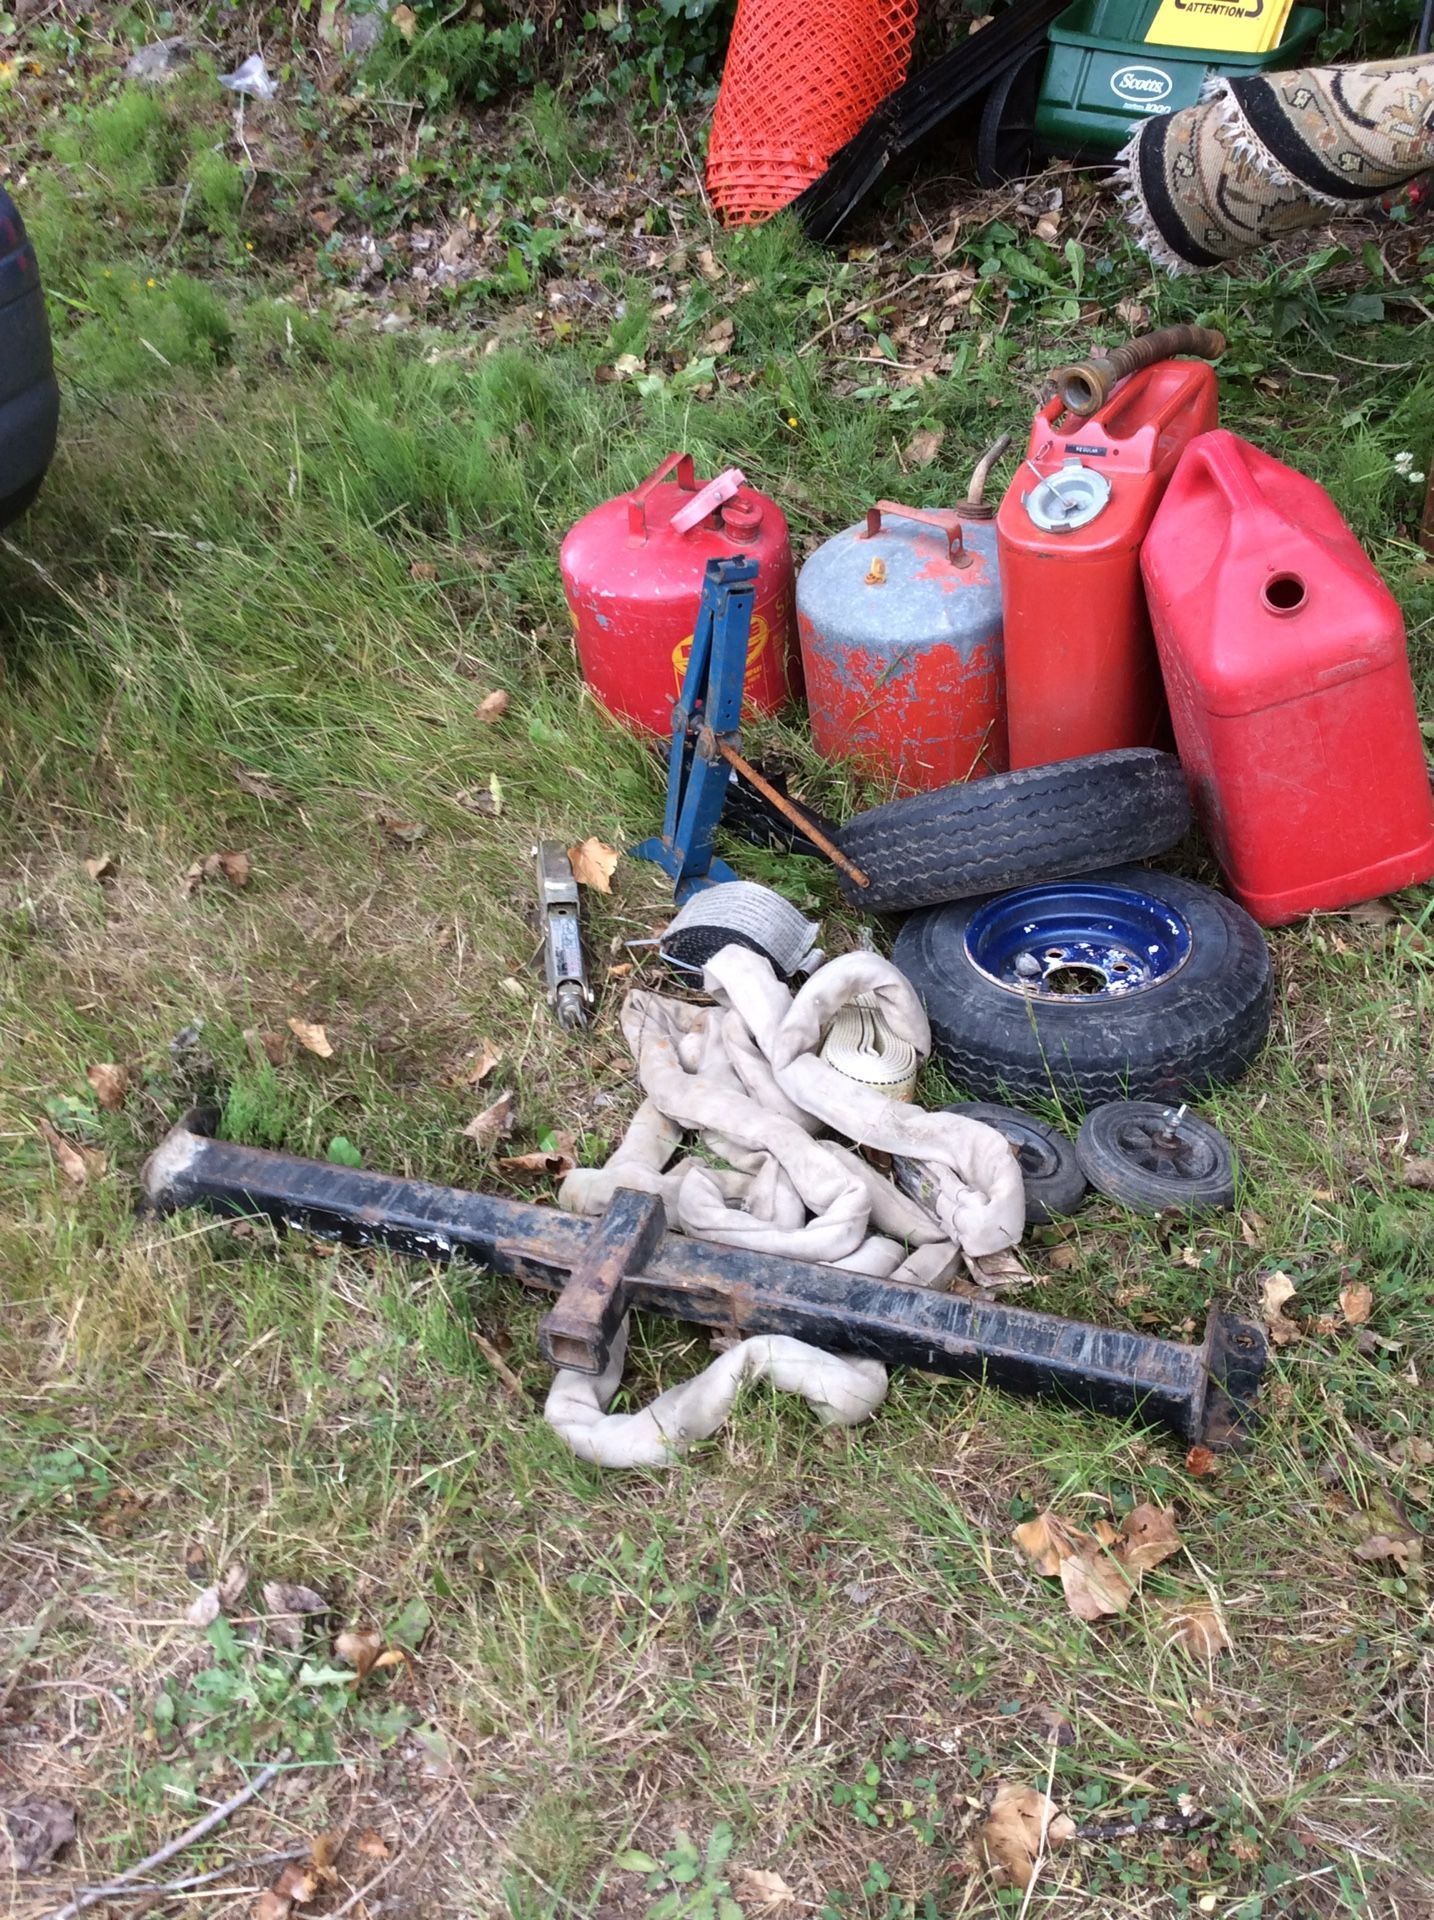 Gas can lot, tow straps, car jacks, trailer tires(2), tow hitch